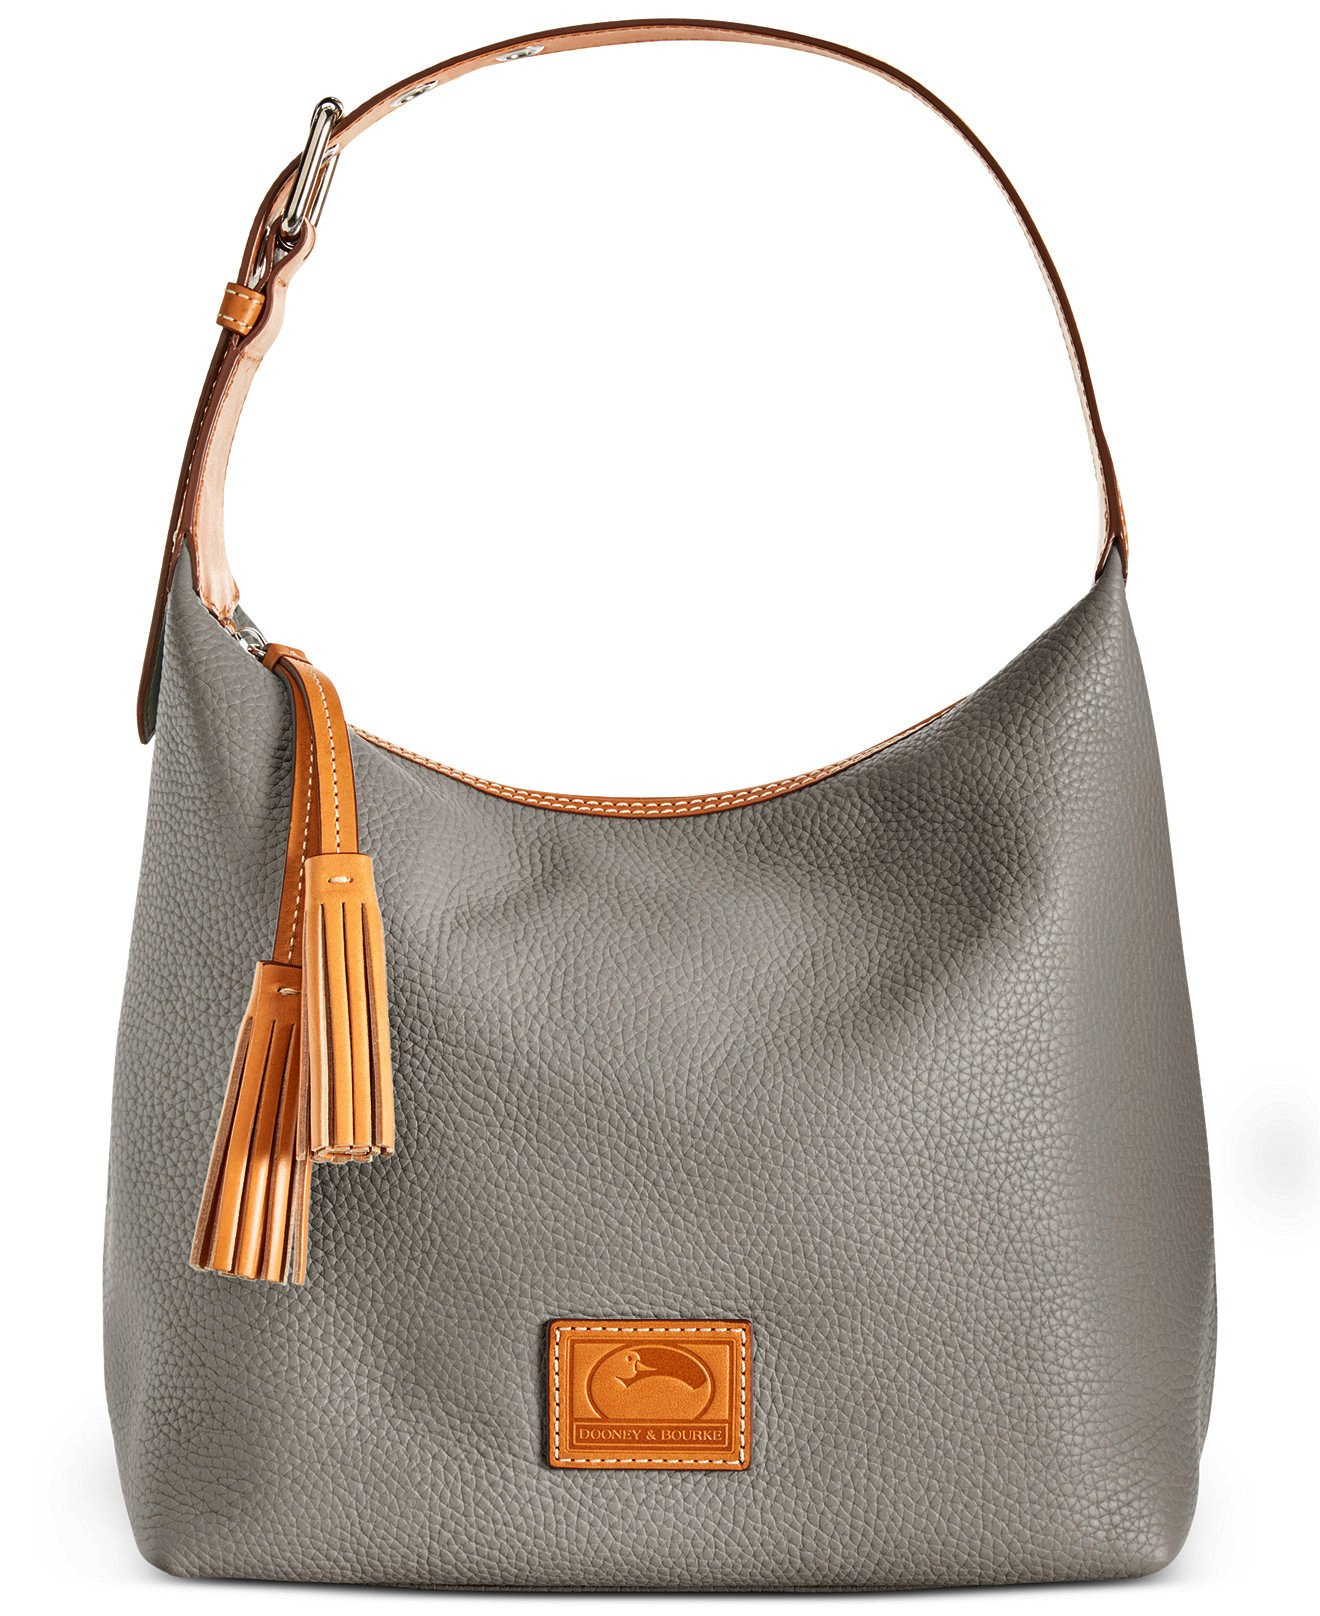 Dooney & Bourke Paige Sac Leather Hobo (Taupe)